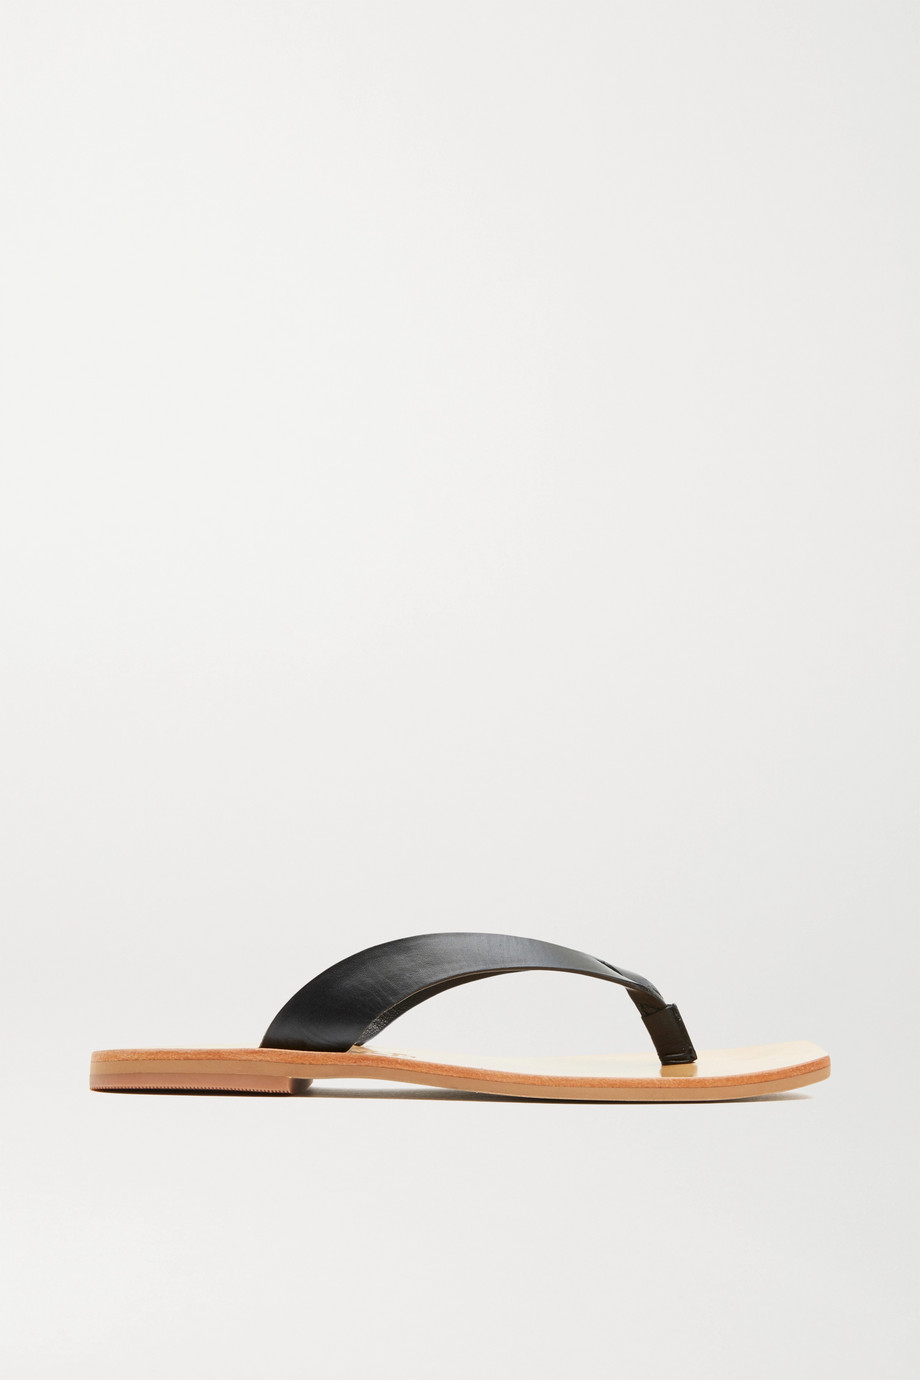 ST. AGNI Basik leather flip flops